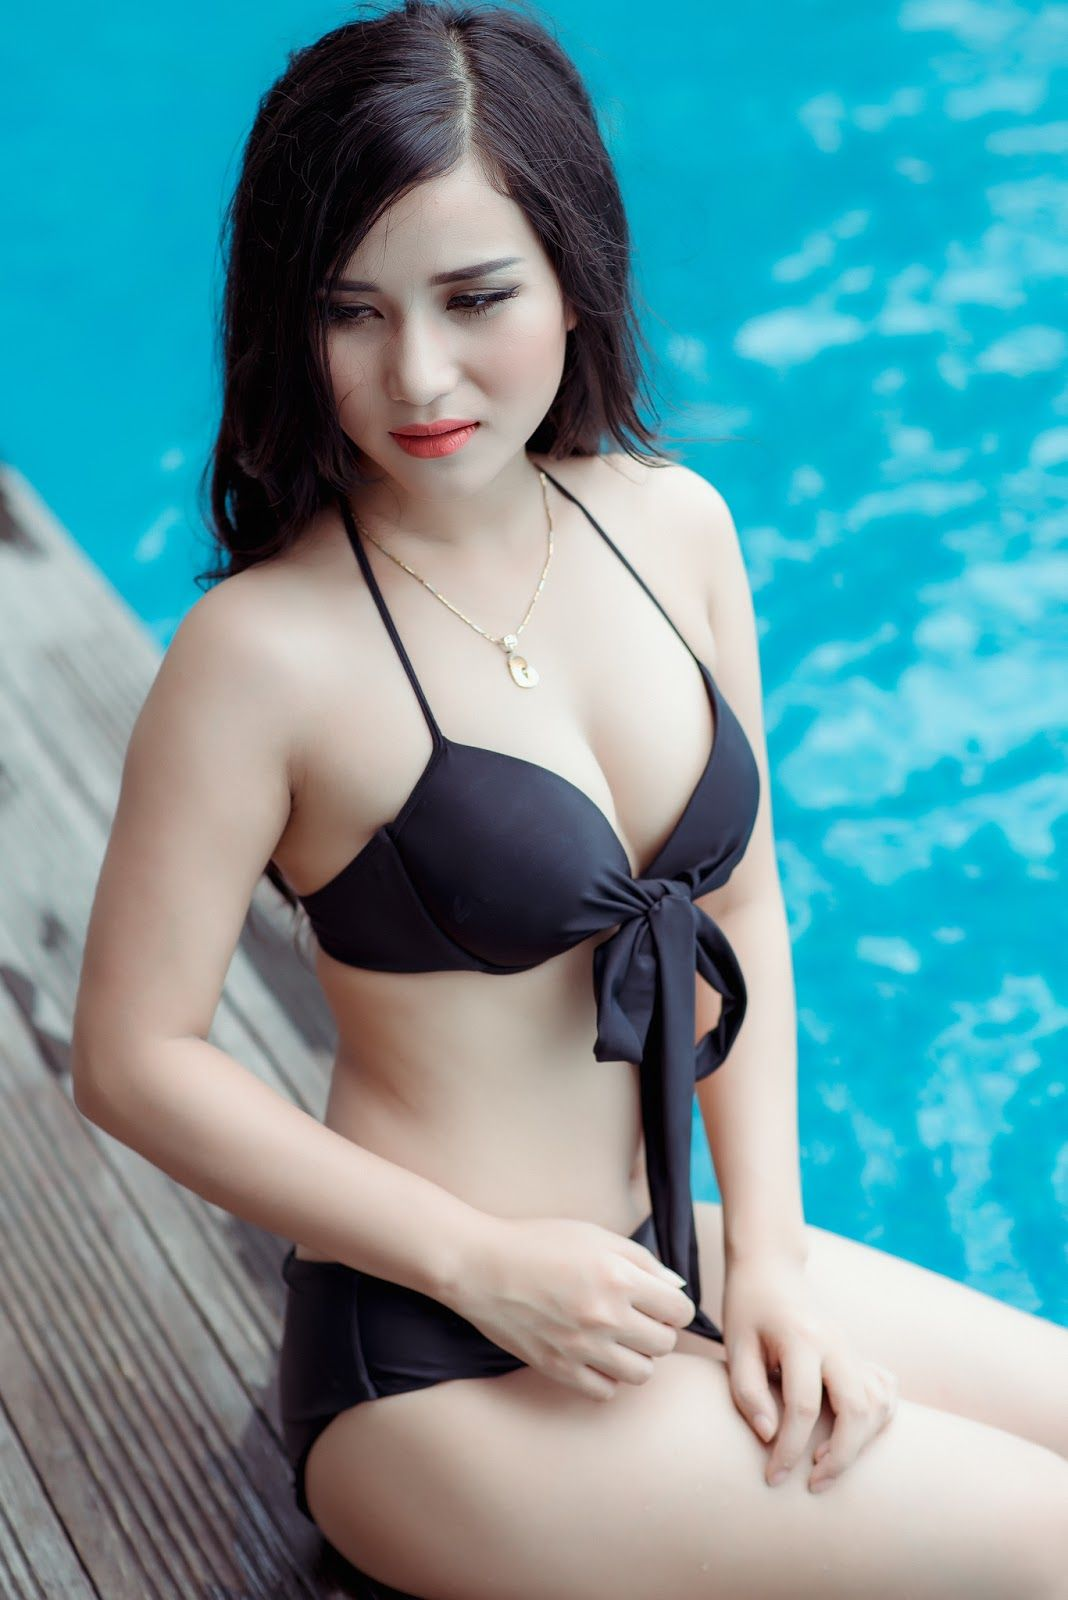 Suggest you Nude swimmer lady hot thank for